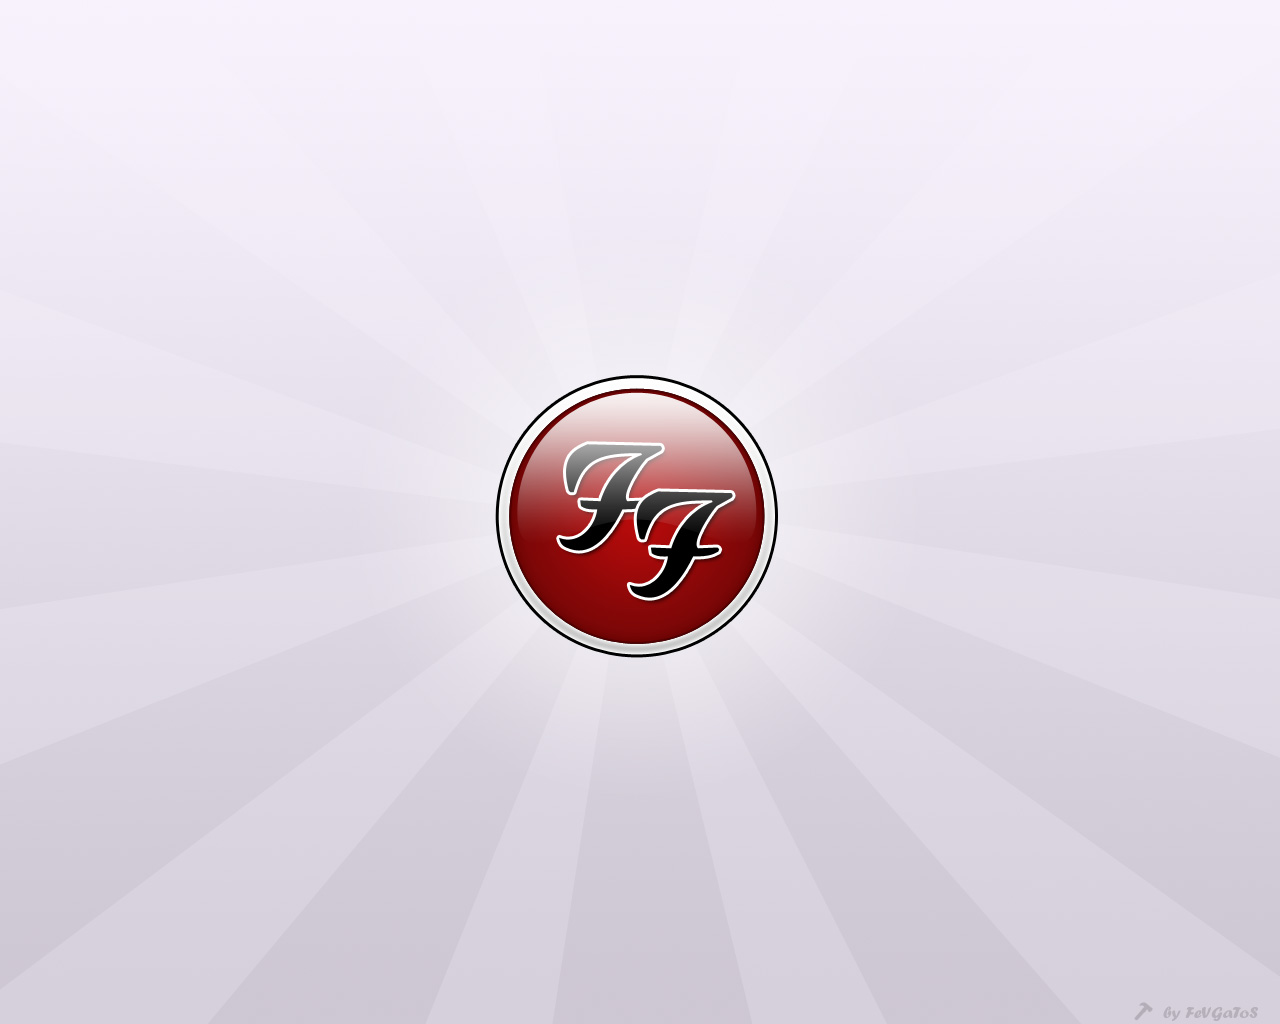 Foo Fighters Wallpaper by FeVGaToS 1280x1024